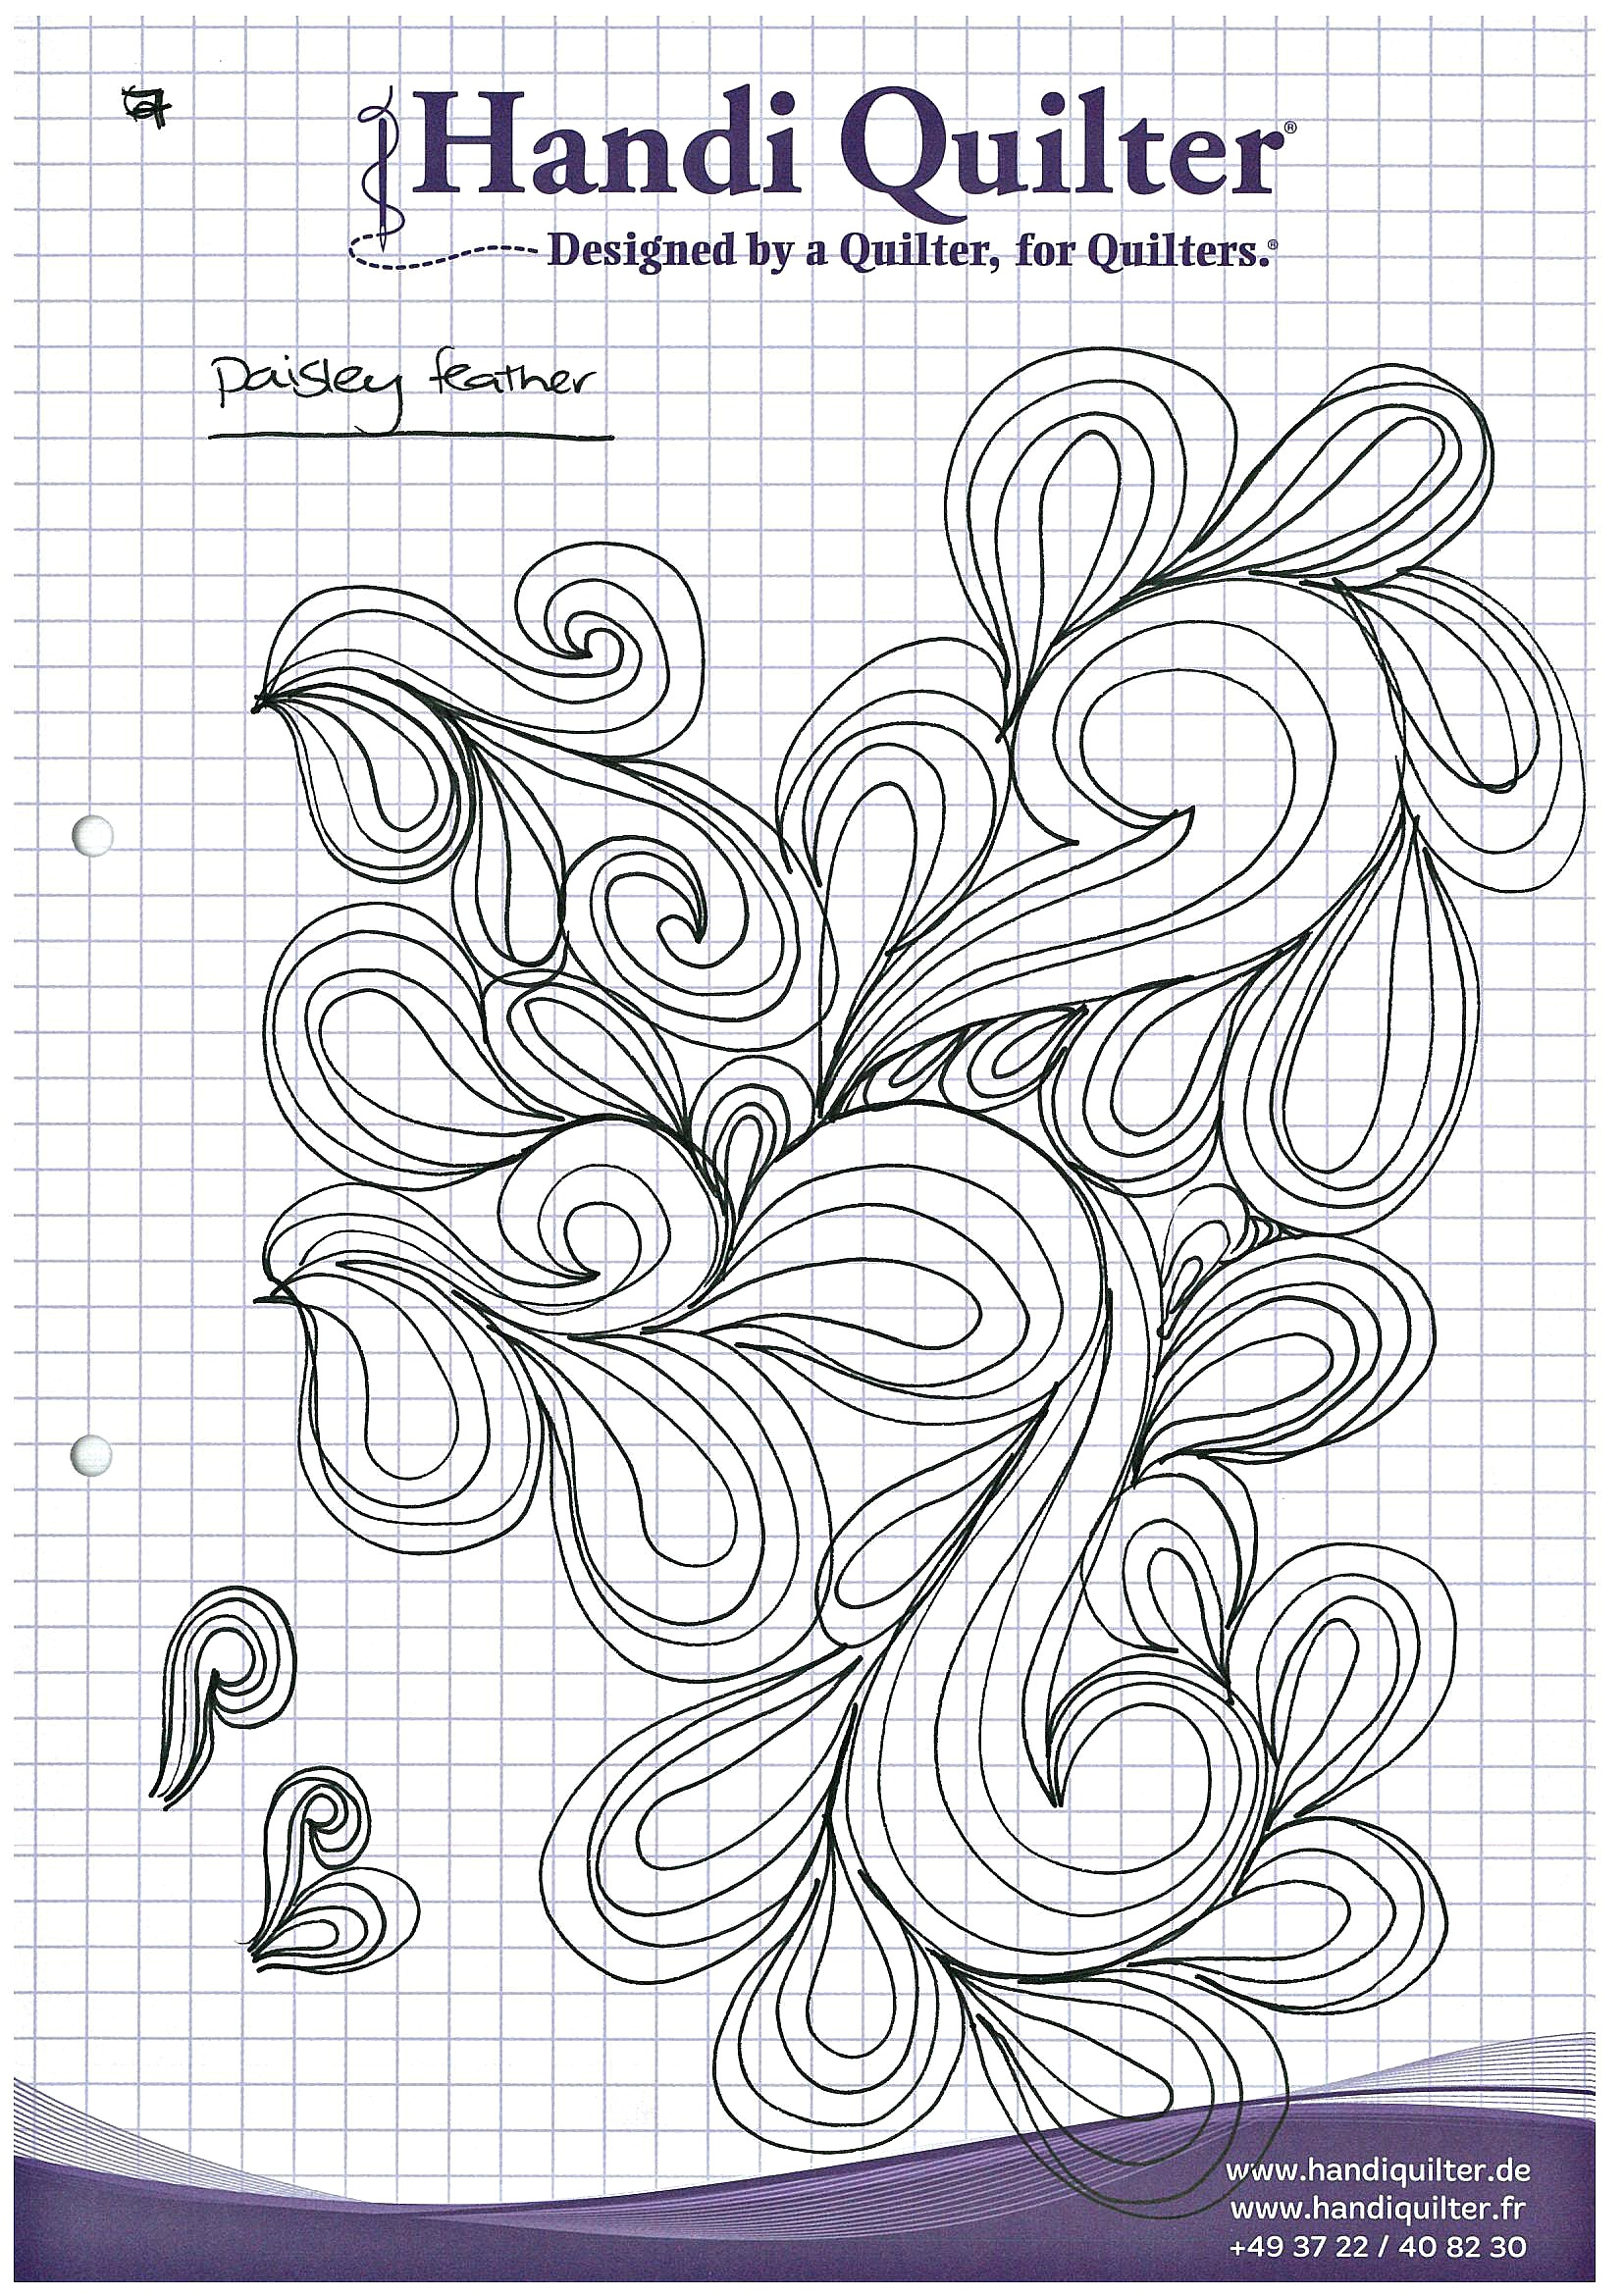 paisley-feather-quilting-design